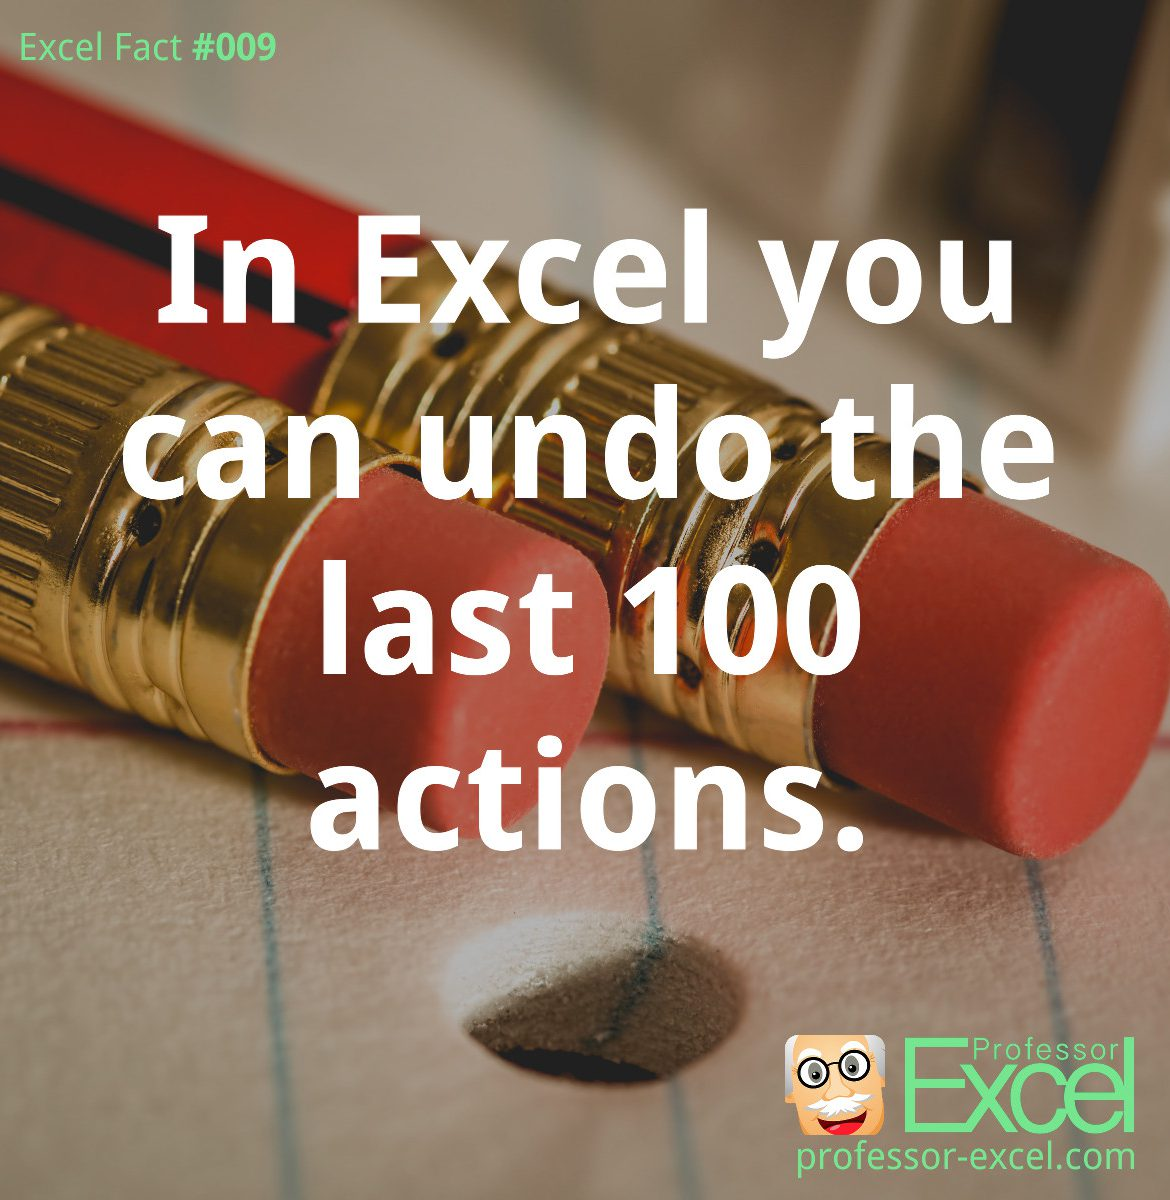 excel, excel fact, fact, undo, actions, number